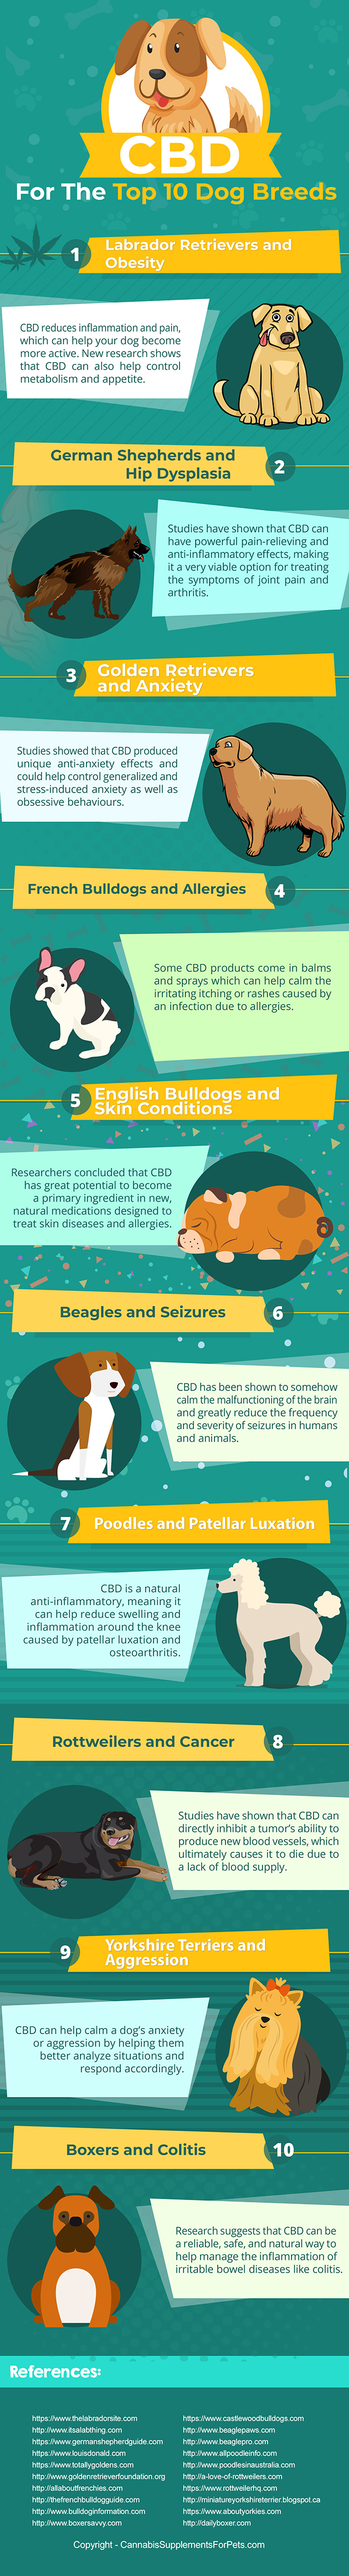 Infographic on CBD for dog breeds